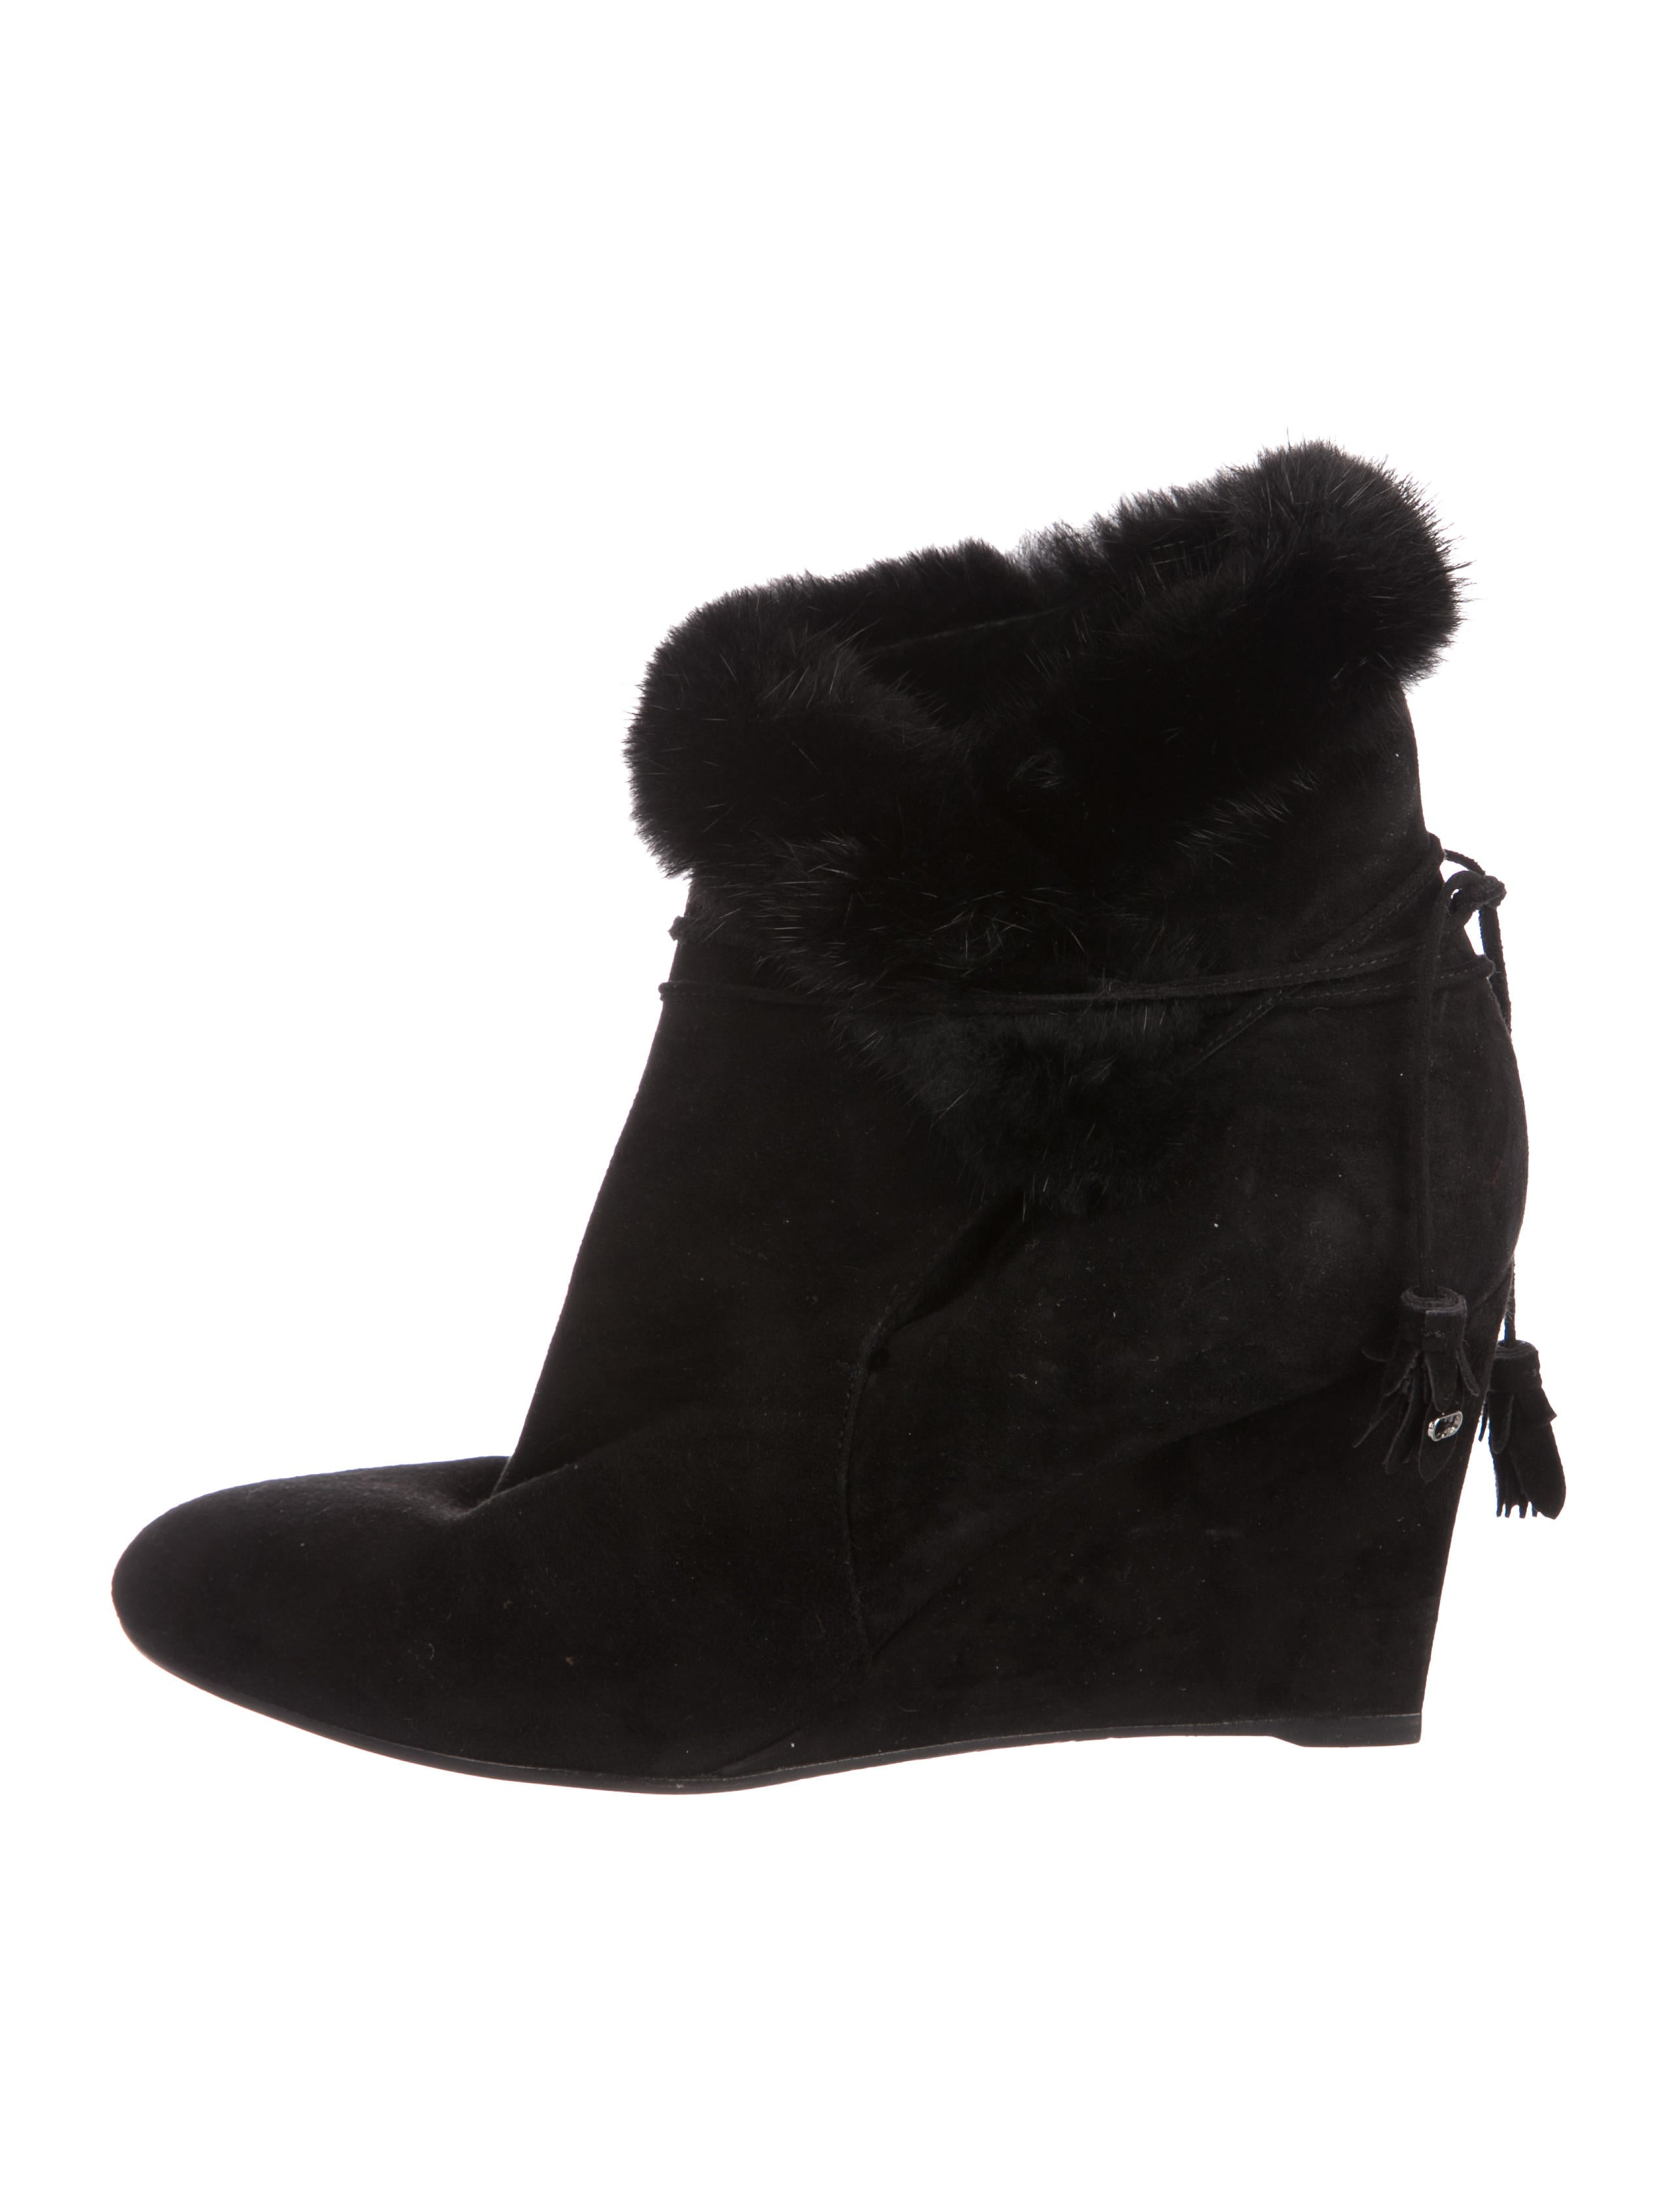 Christian Dior Mink-Trimmed Wedge Boots outlet sale fashion Style very cheap cheap online u1rnH